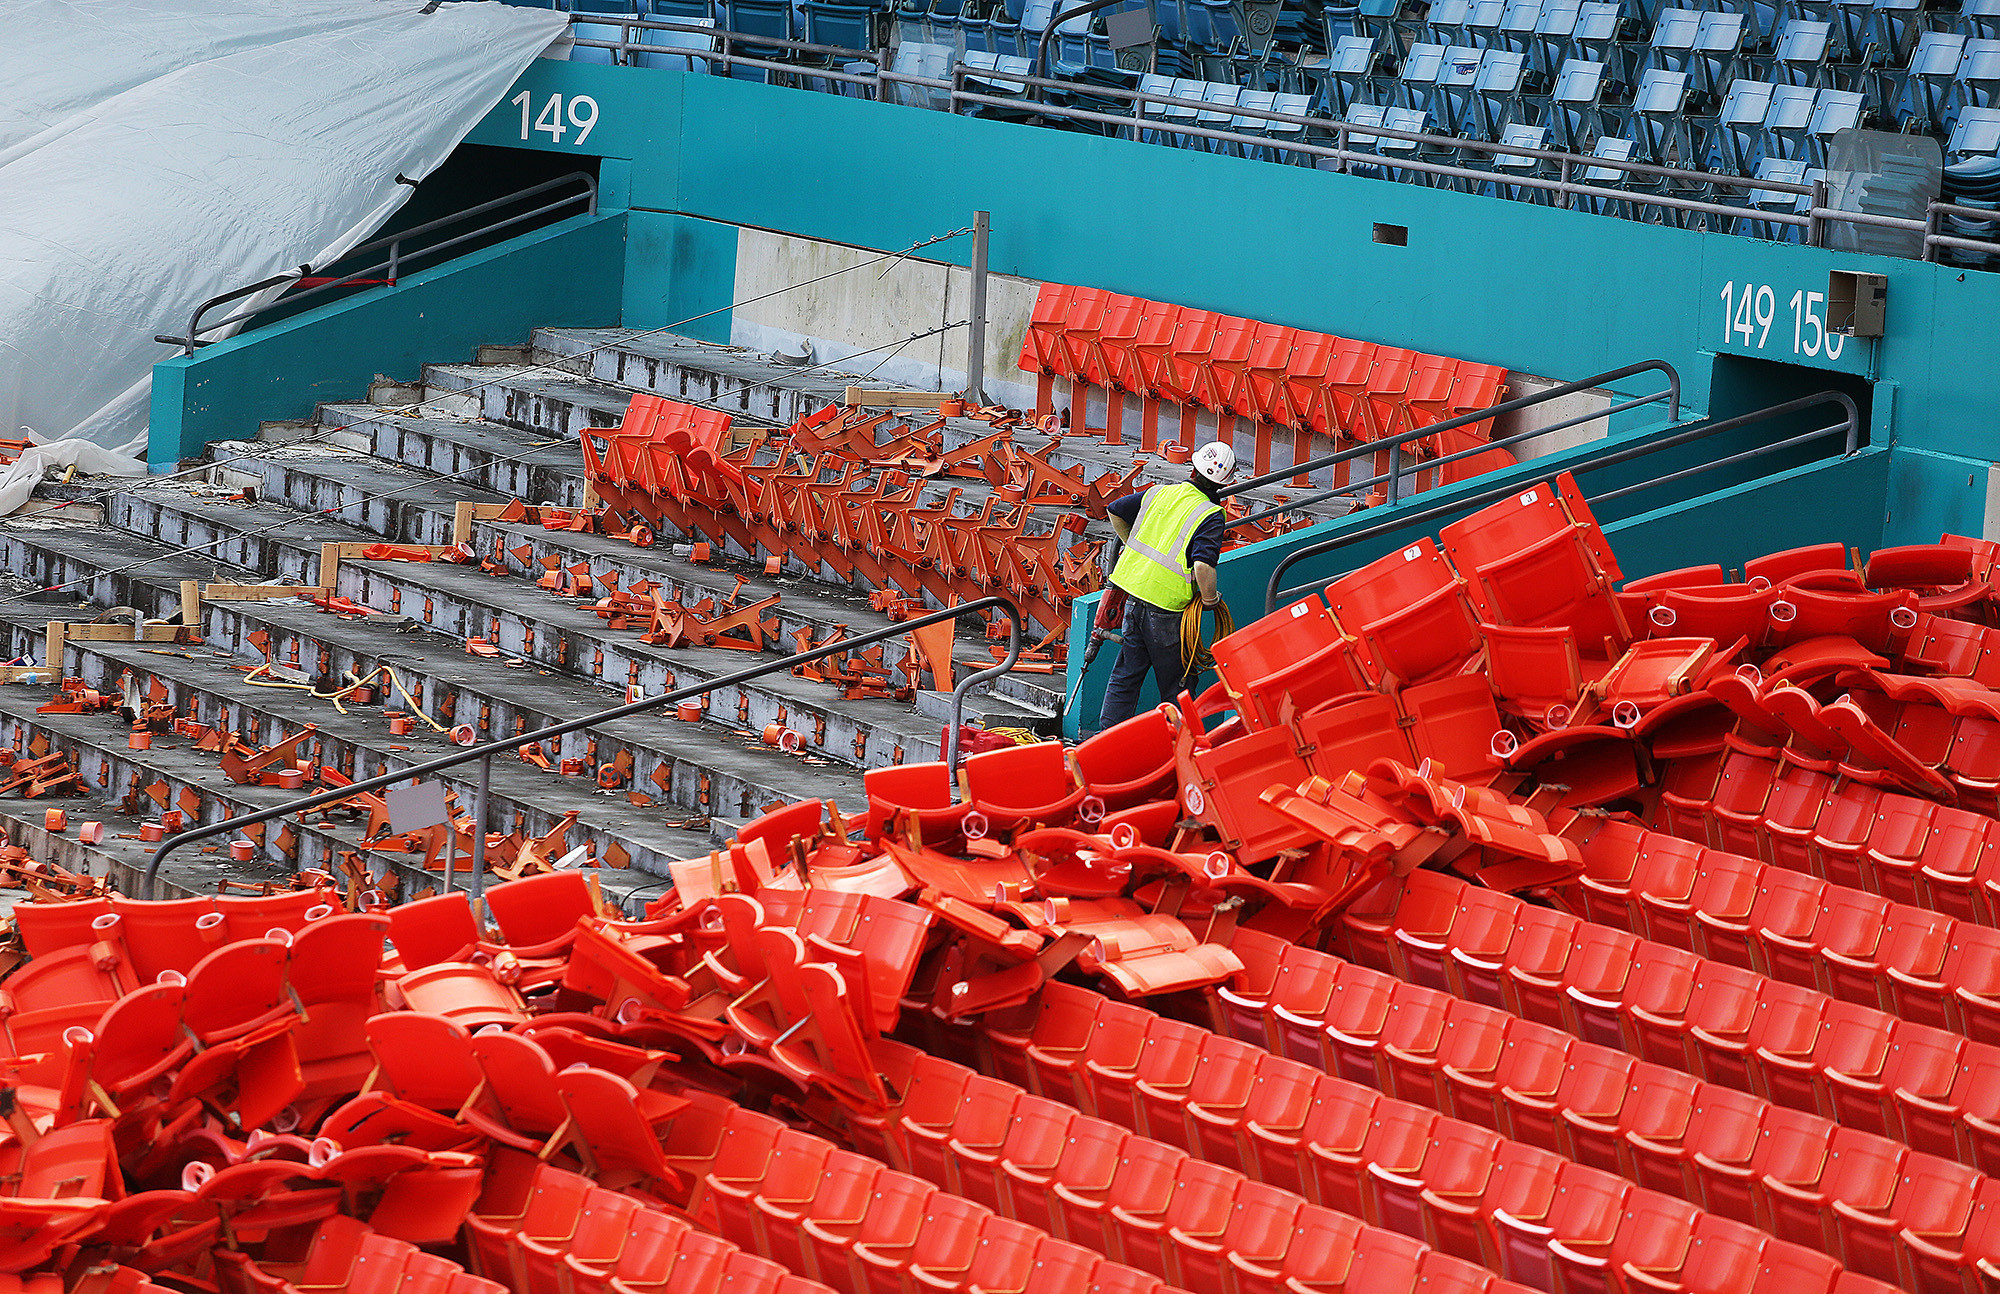 sfl-dolphins-to-sell-old-sun-life-stadium-seats-video-20150707.jpg